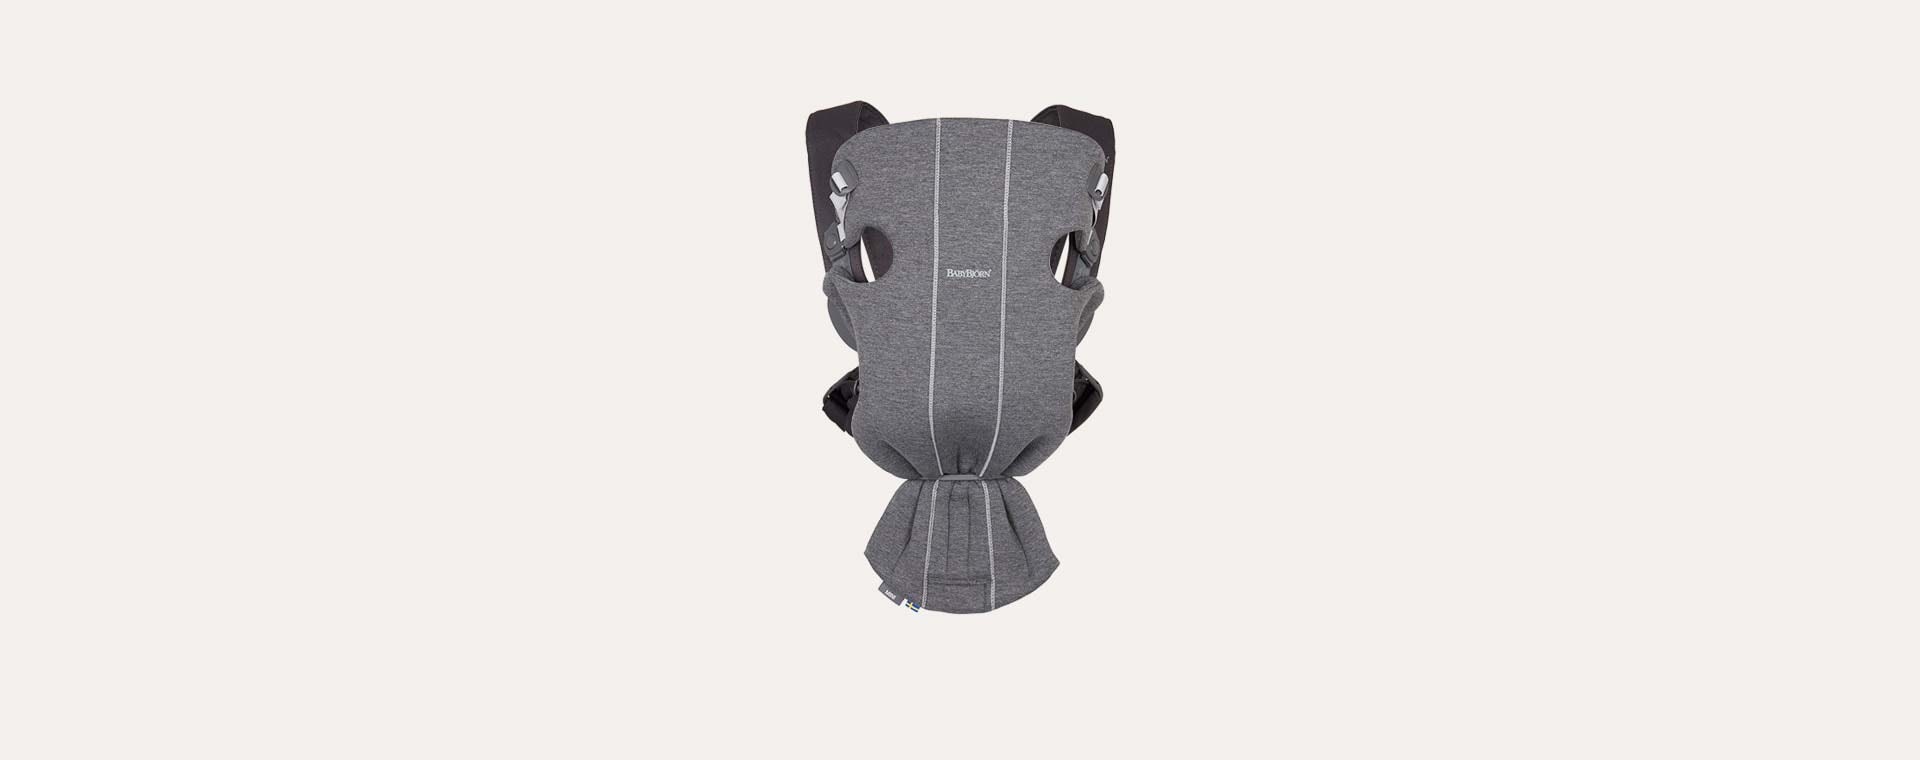 7543665c1e9 Buy the BabyBjorn Mini 3D Jersey Carrier at KIDLY UK